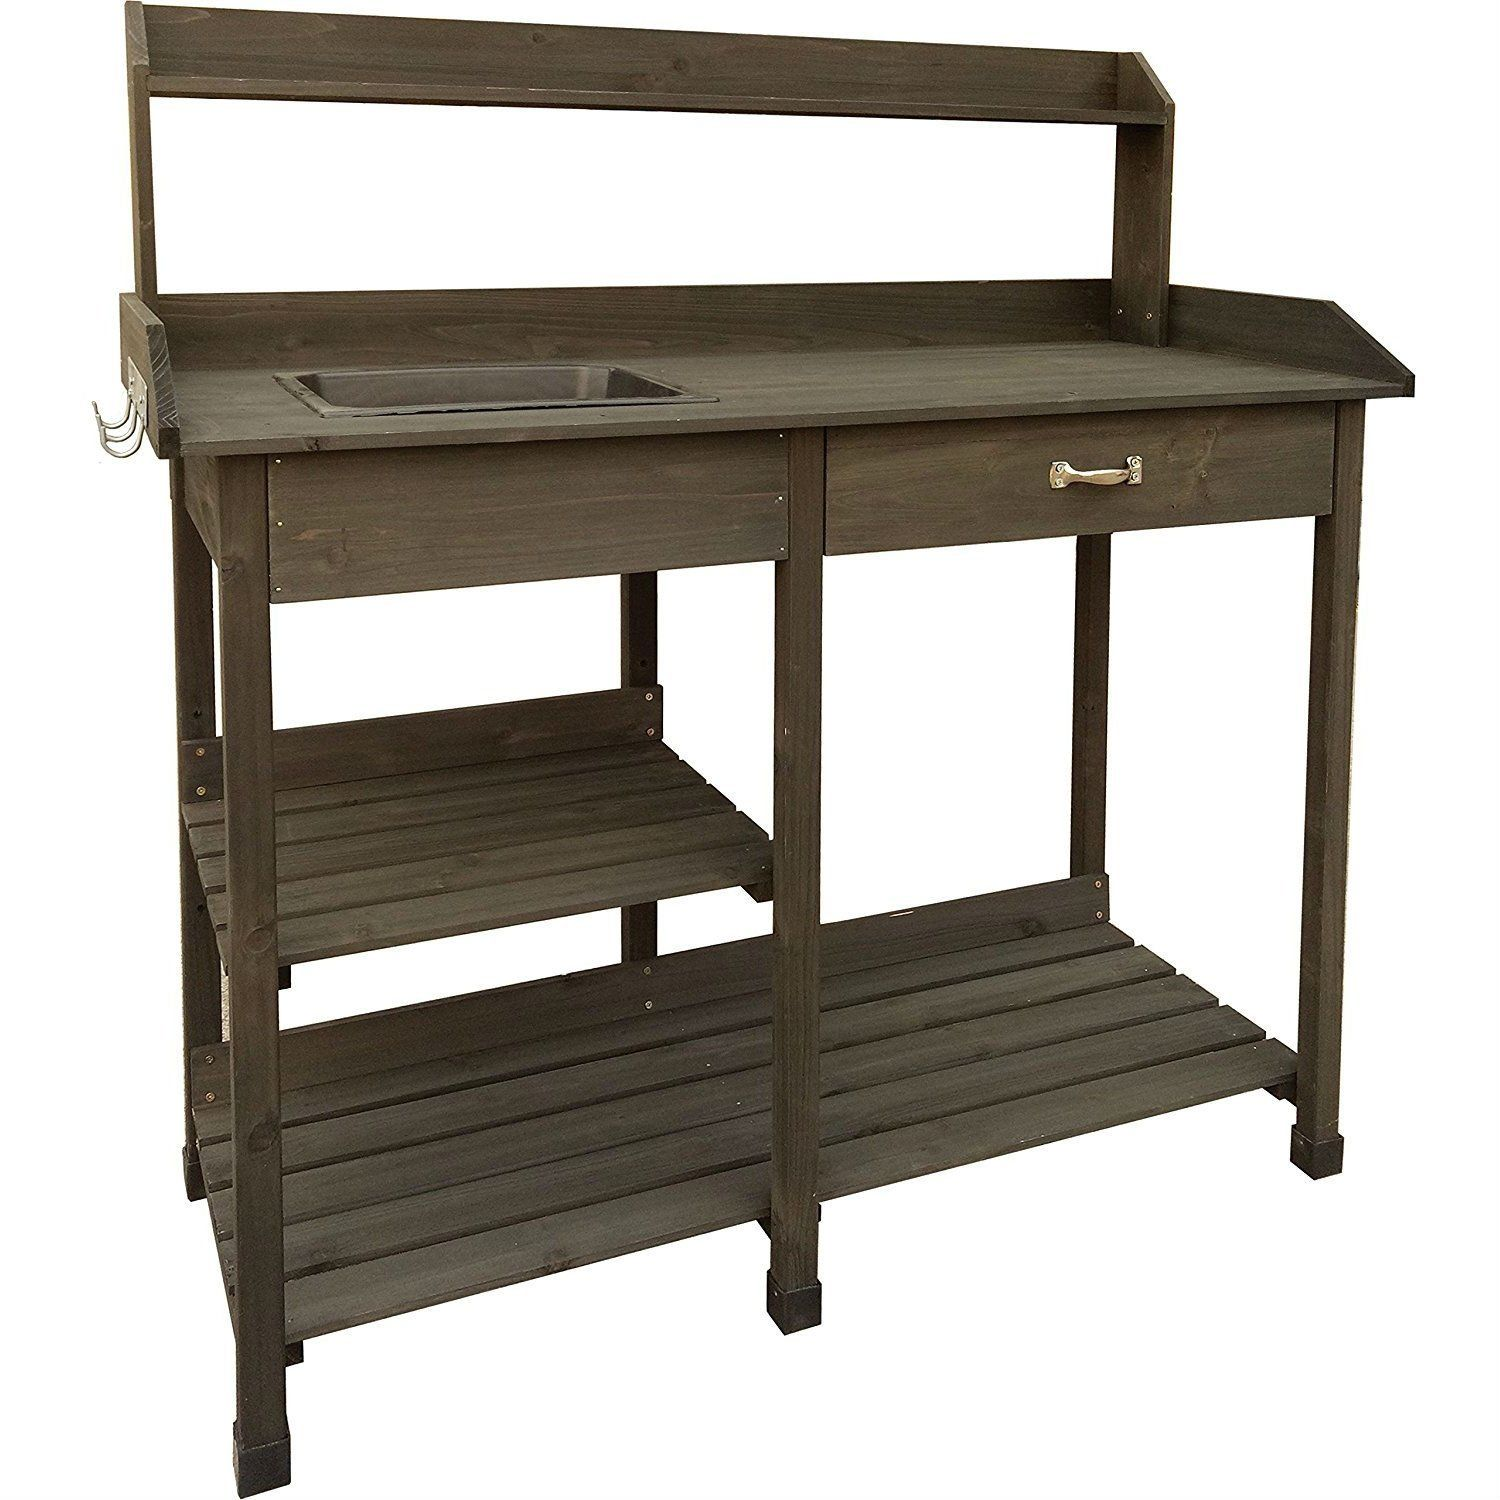 Outdoor Garden Bench Work Table With Drawer In Dark Brown Wood Finish Outdoor Garden Bench Garden Bench Brown Wood